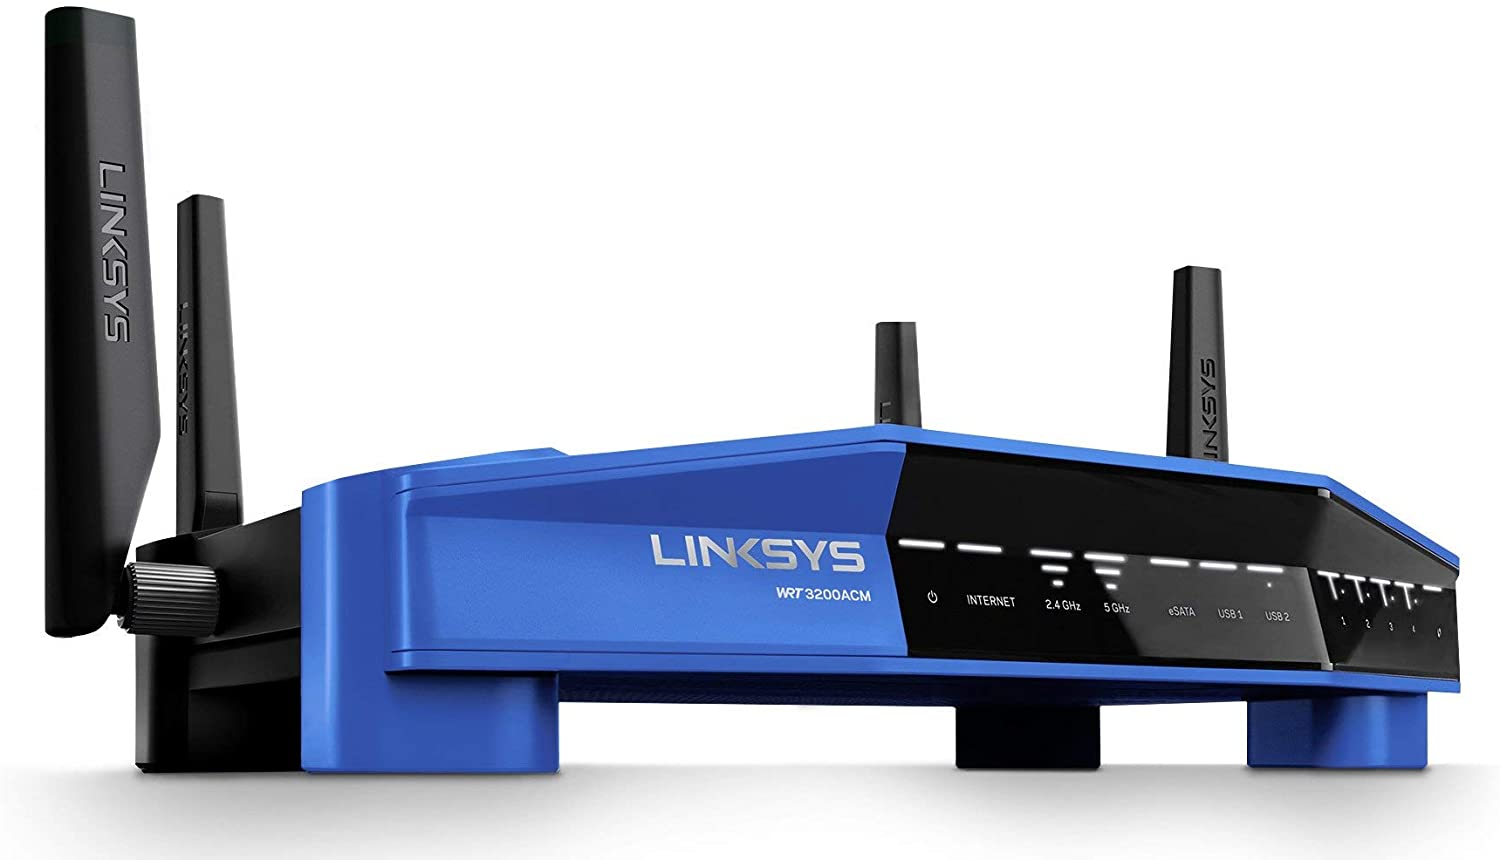 Linksys WRT3200 Router